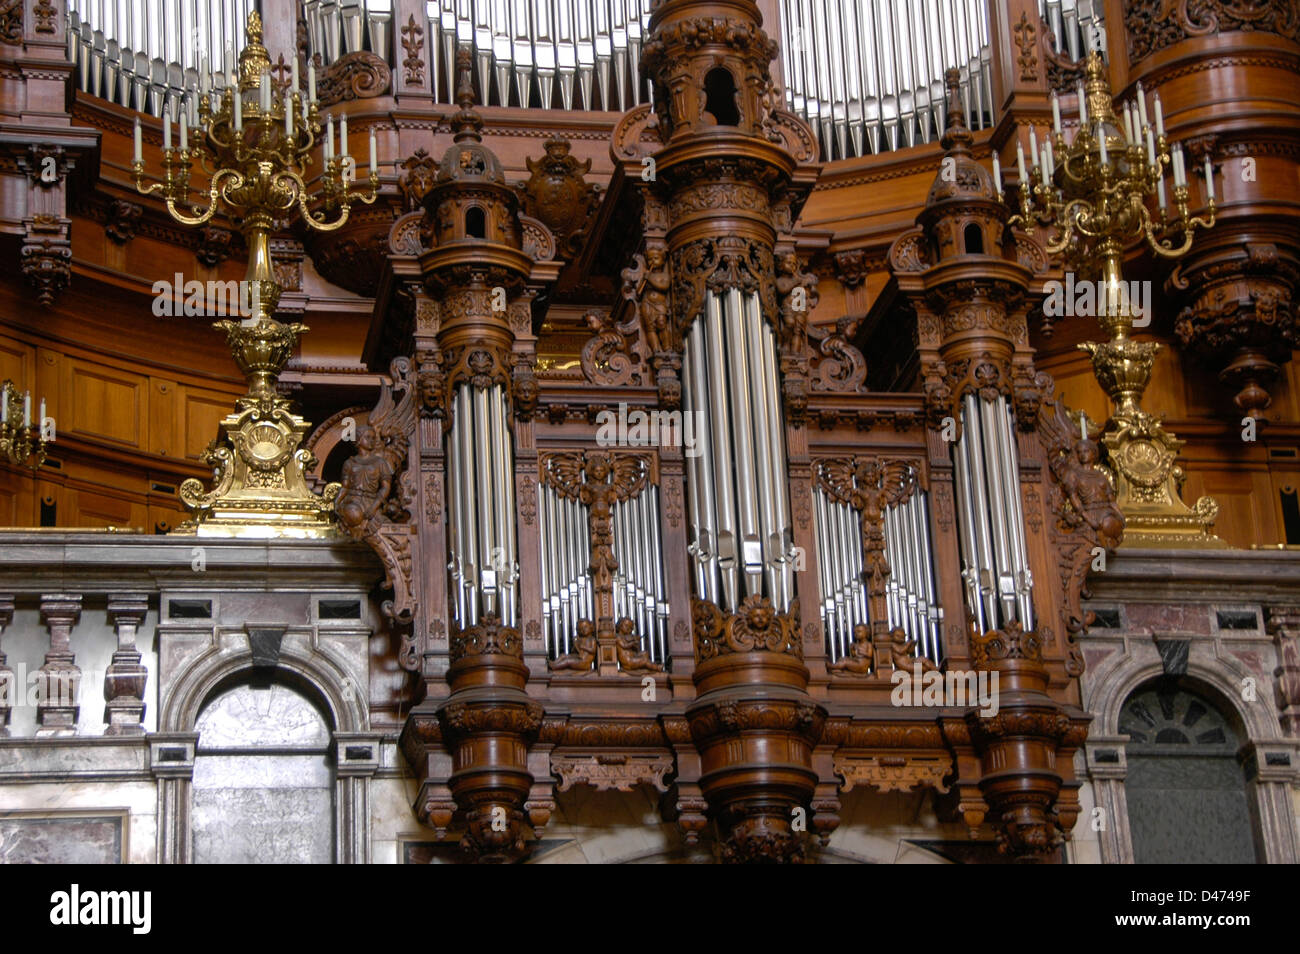 Berlin cathedral (Berliner Dom), Germany. The large Sauer Organ with 7269 pipes - Stock Image